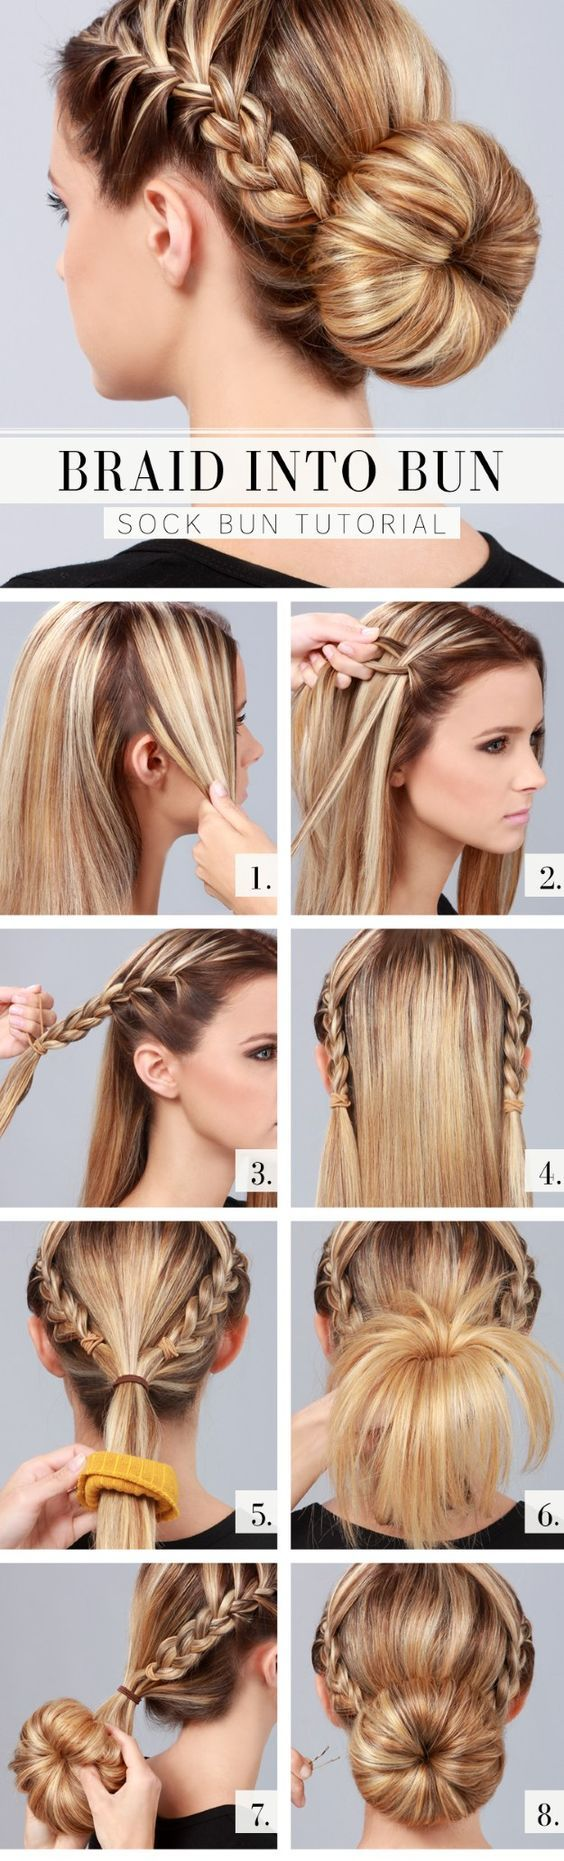 Get picture perfect hair with these simple tips click image for